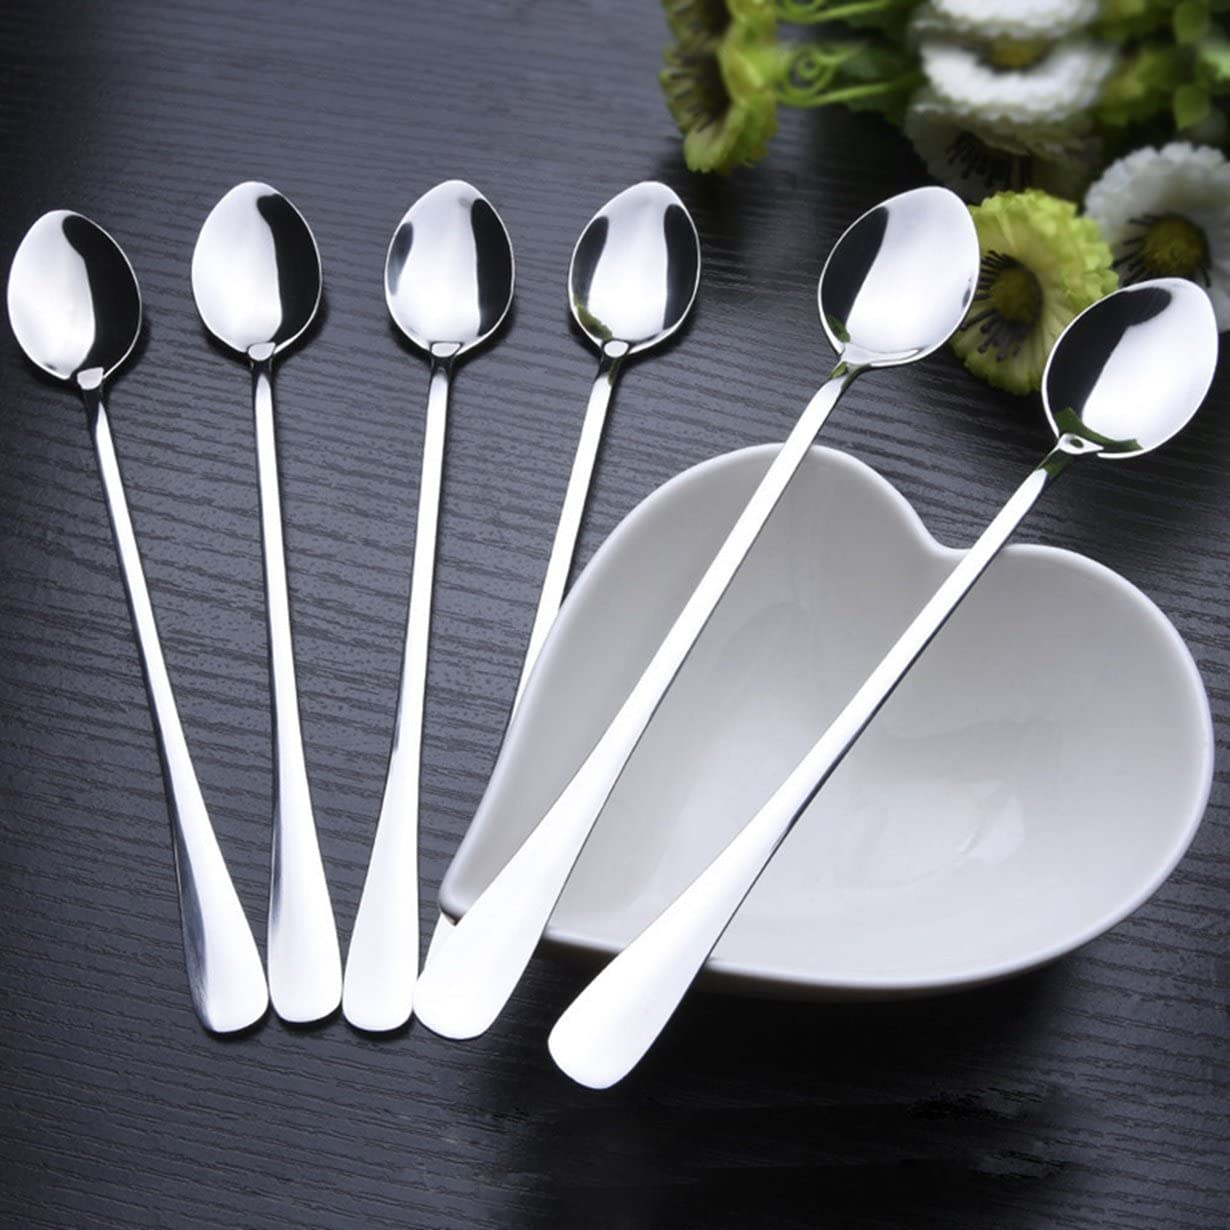 Stainless Steel Latte Sugar Spoons for Ice Cream Sundae Coffee Colorful 6